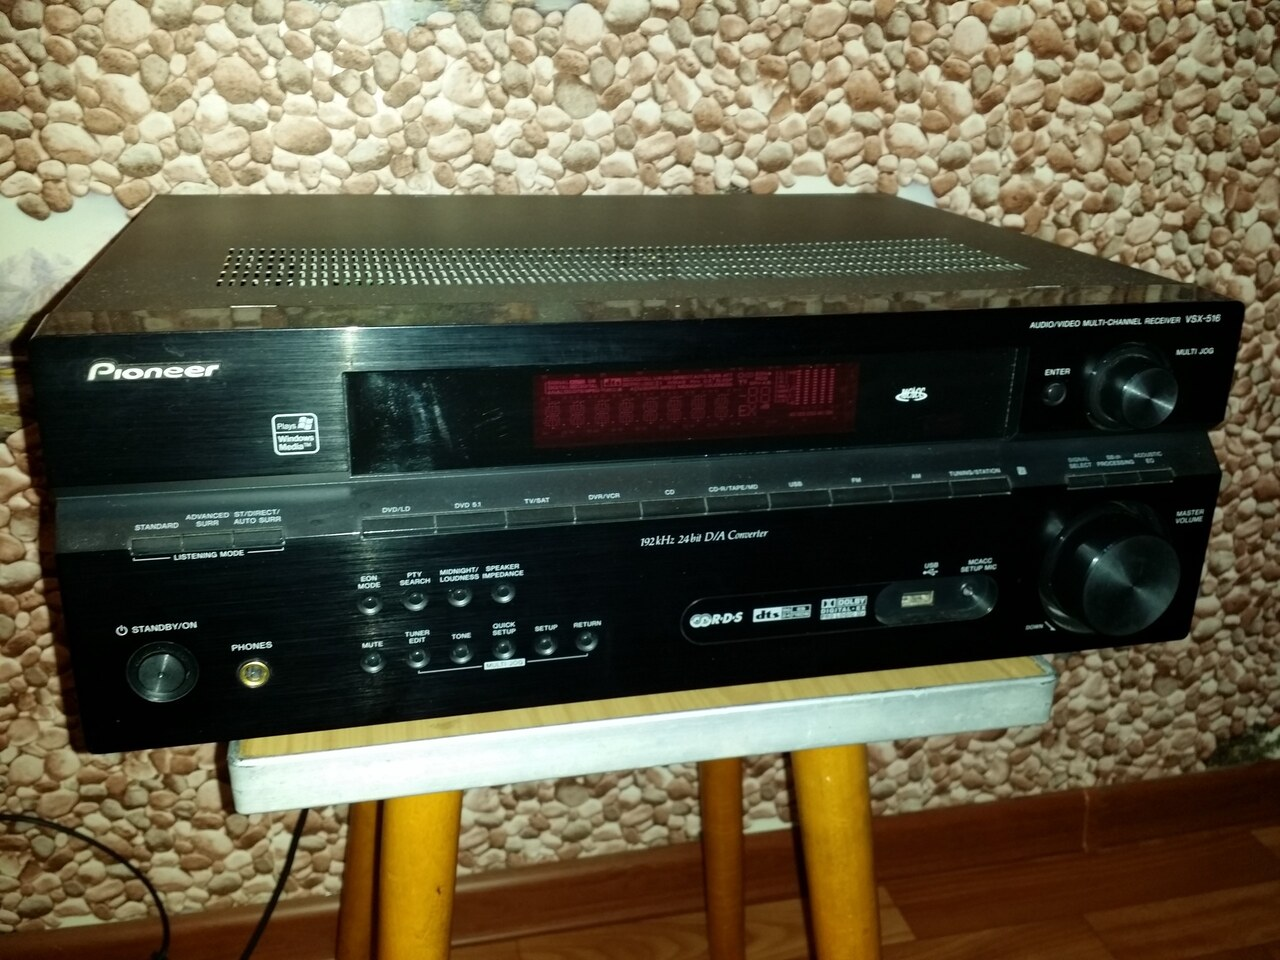 Pioneer vsx-516 manual audio video multi channel receiver.